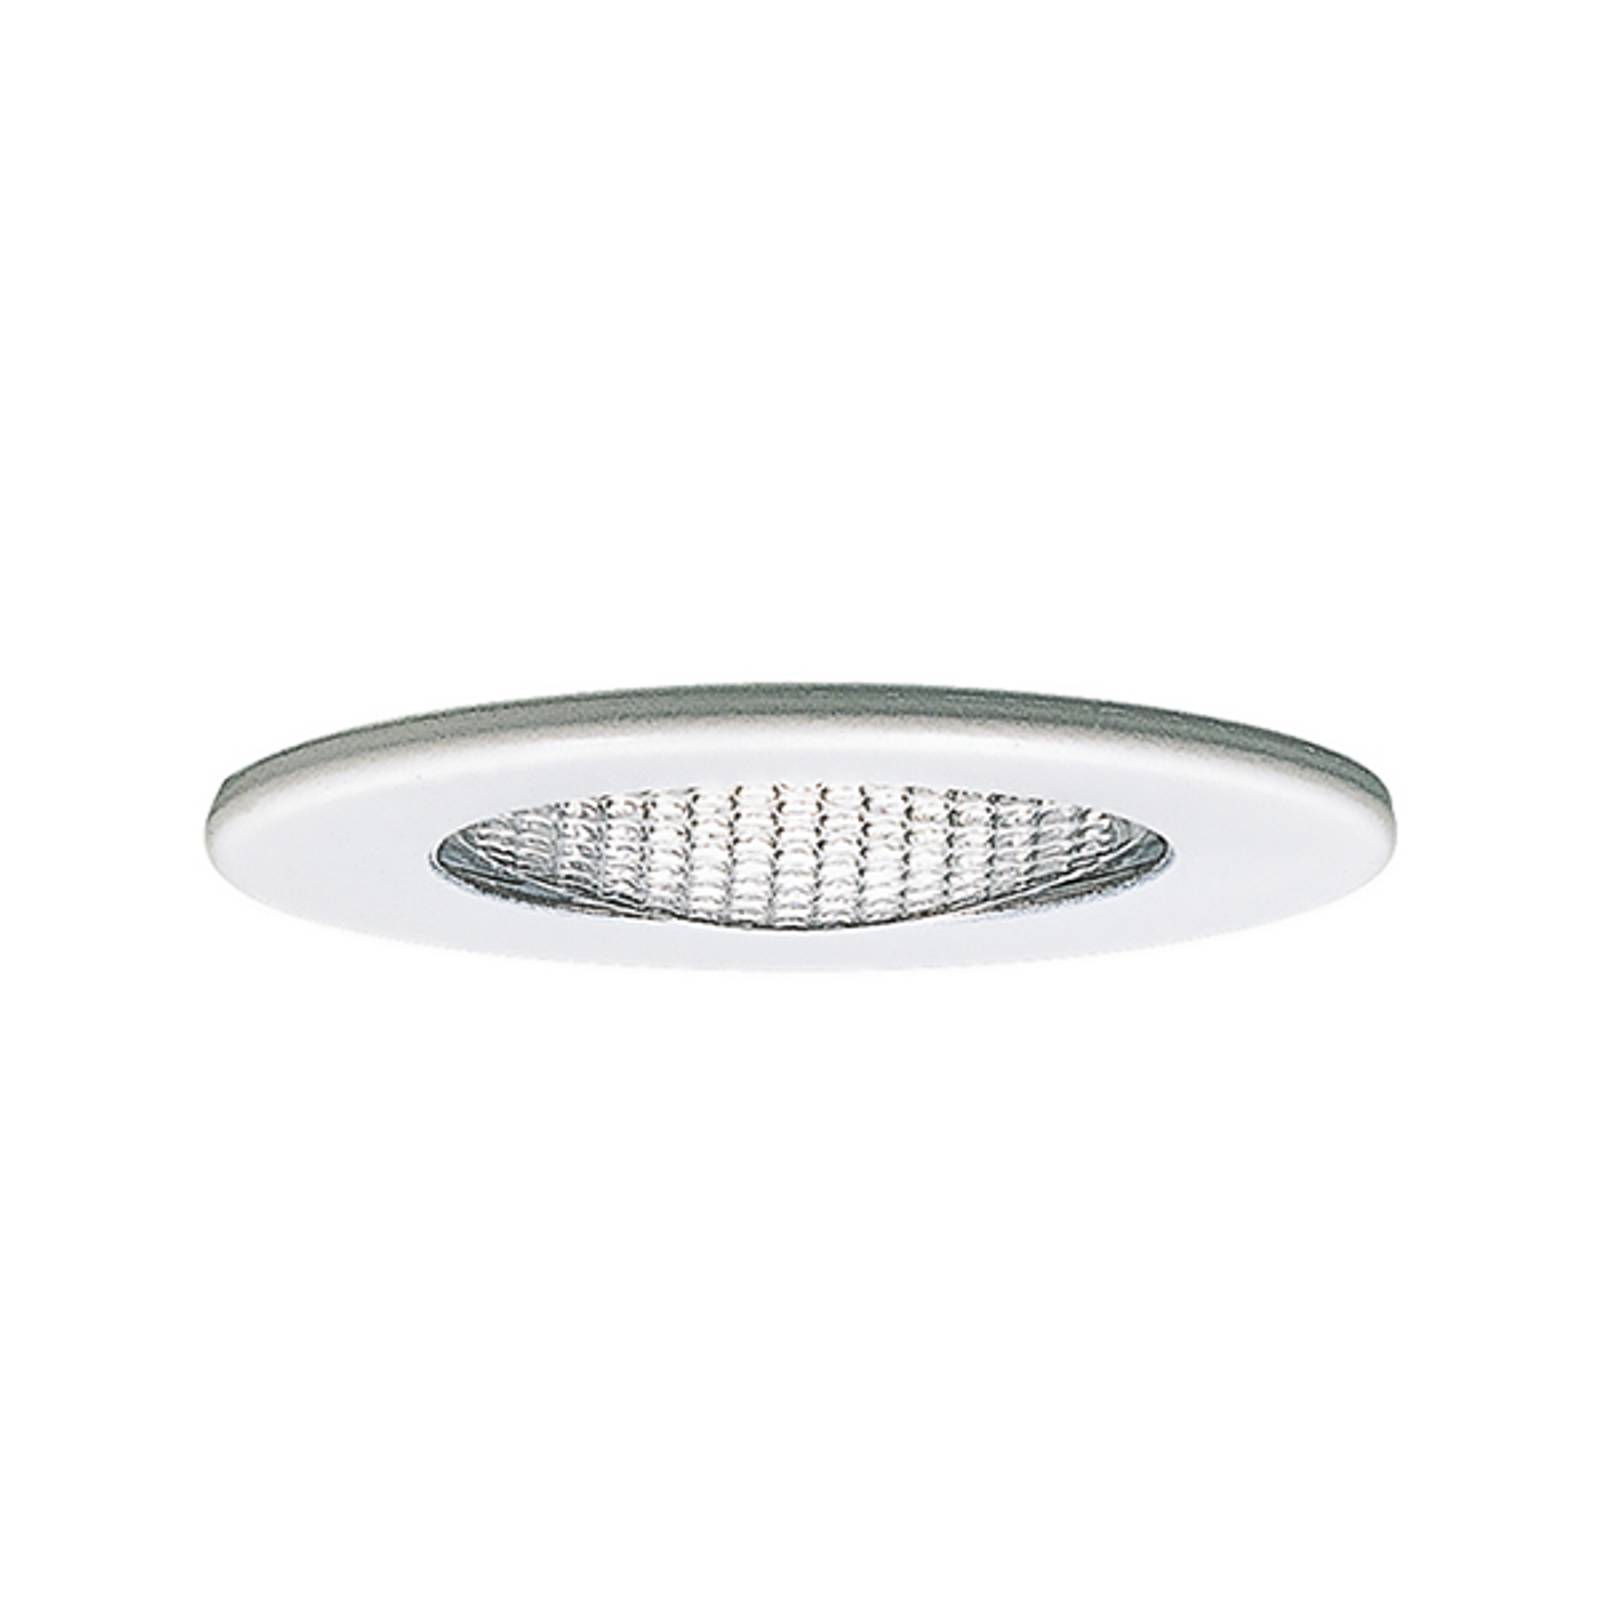 White recessed furniture light Gave 1 x 20 G4 from Paulmann